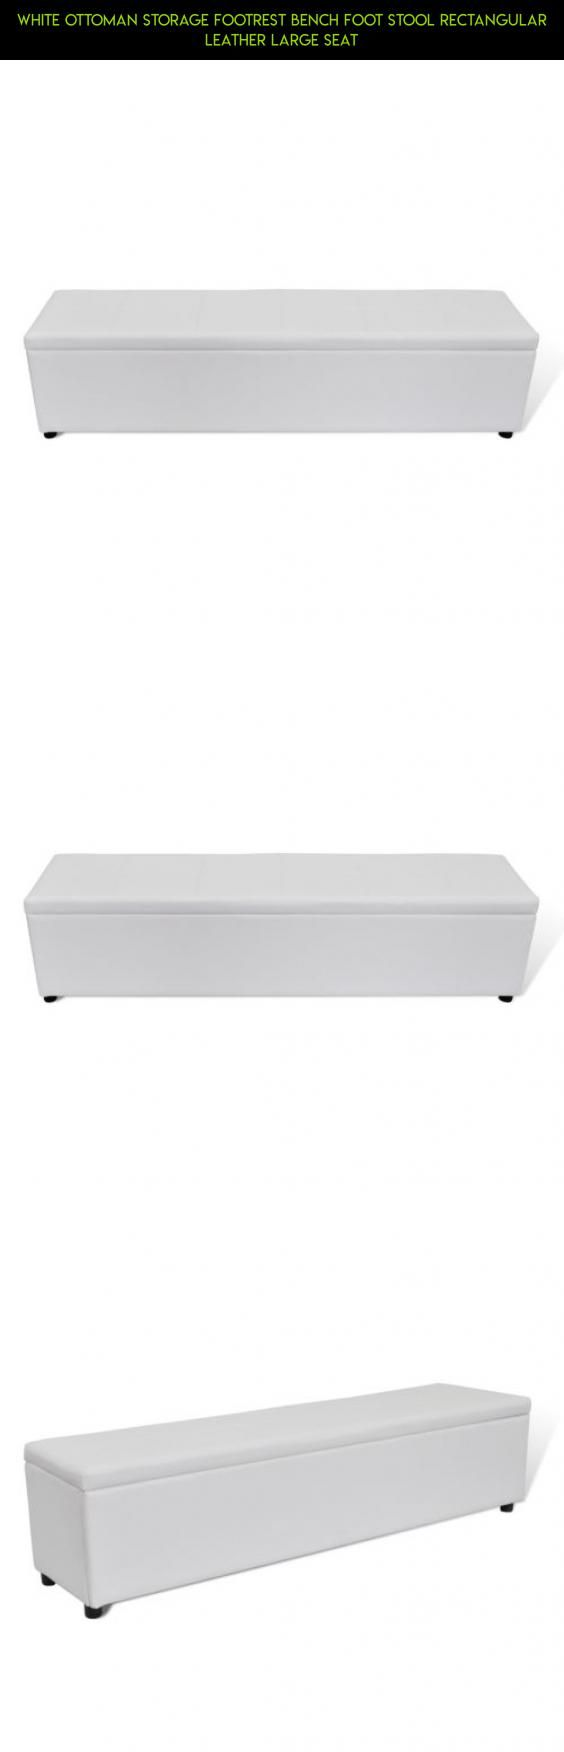 White Ottoman Storage Footrest Bench Foot Stool Rectangular Leather Large  Seat #kit #products # - 25+ Best Ideas About White Storage Ottoman On Pinterest Ikea